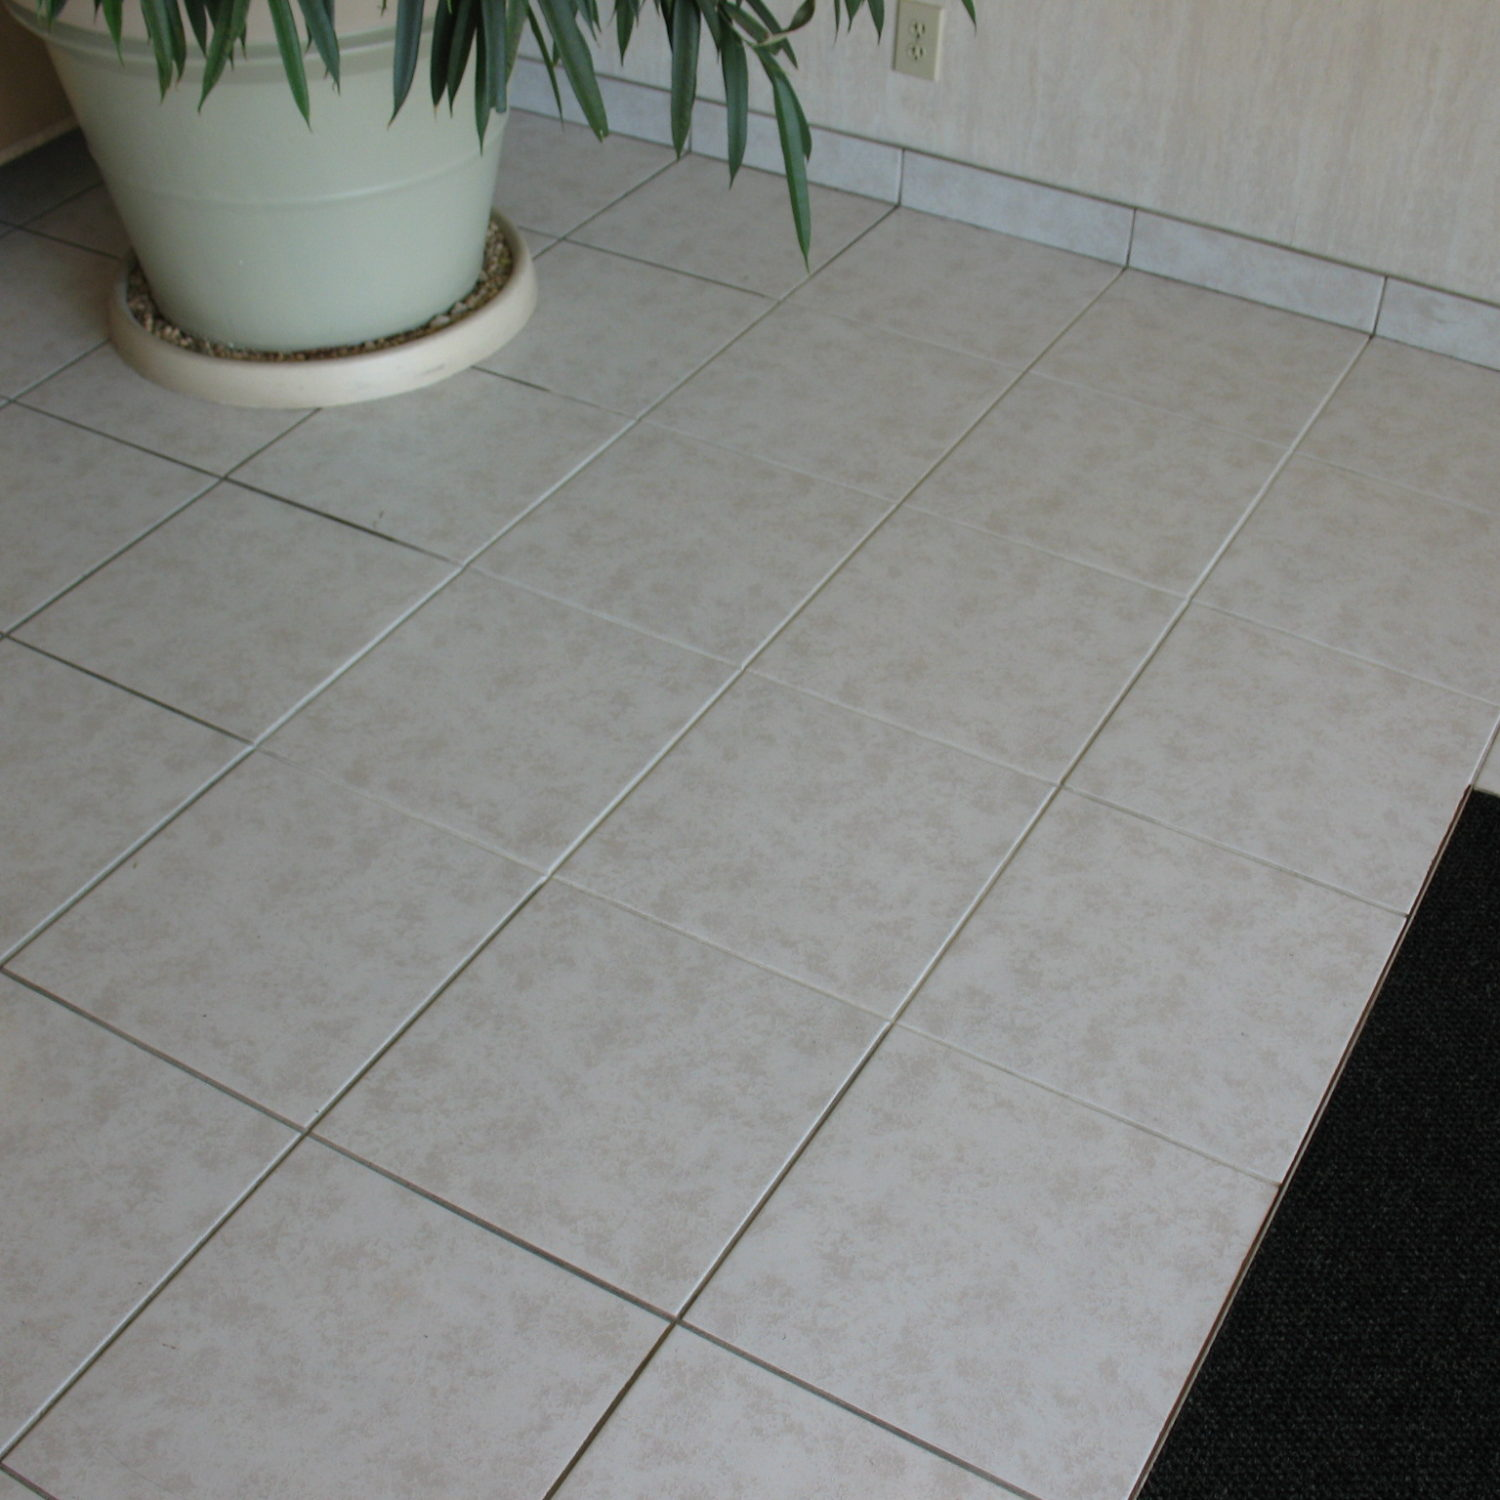 commercial tile cleaning tampa fl